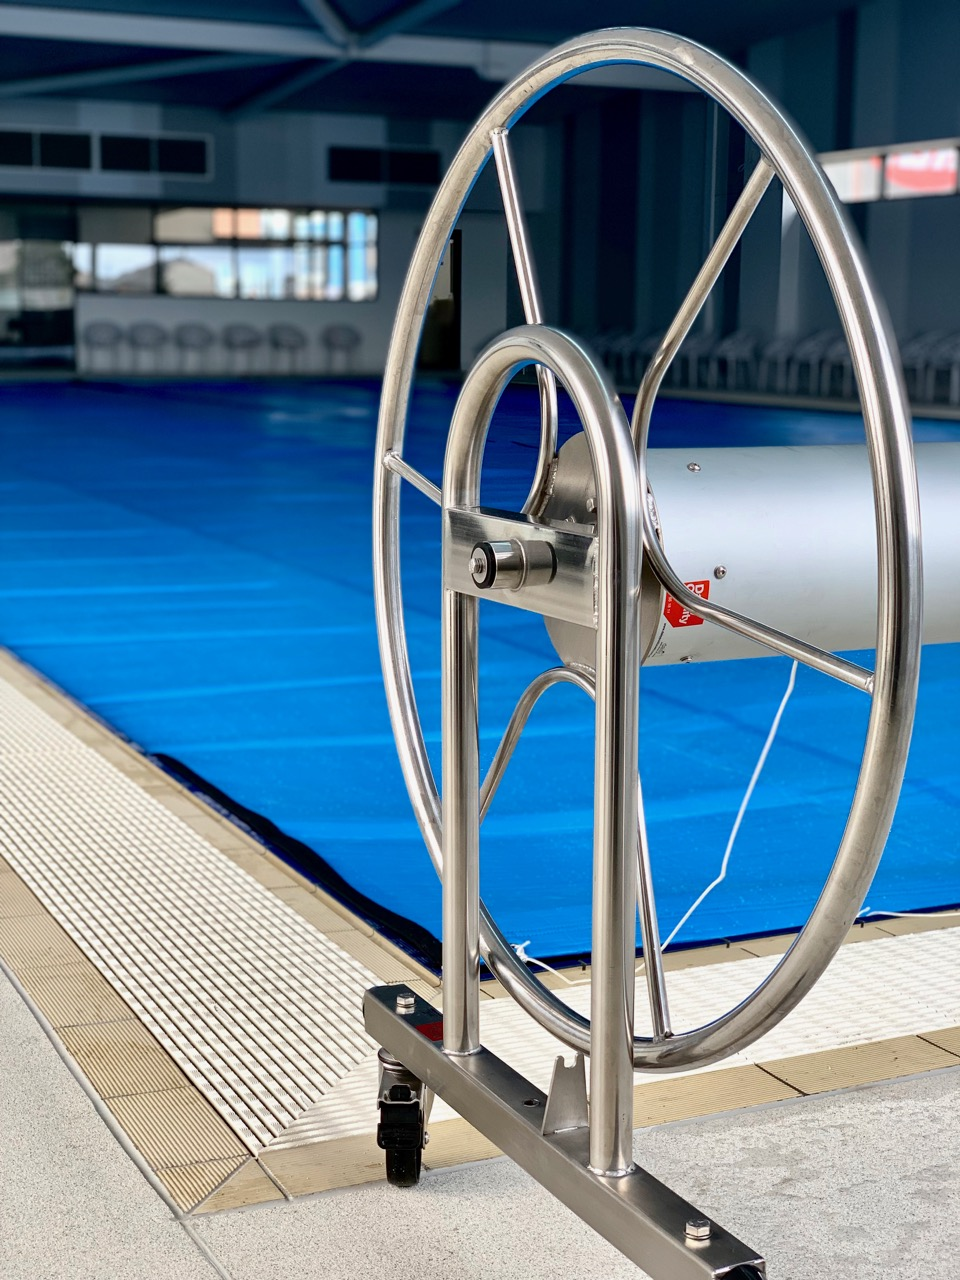 Commercial Pool Reel